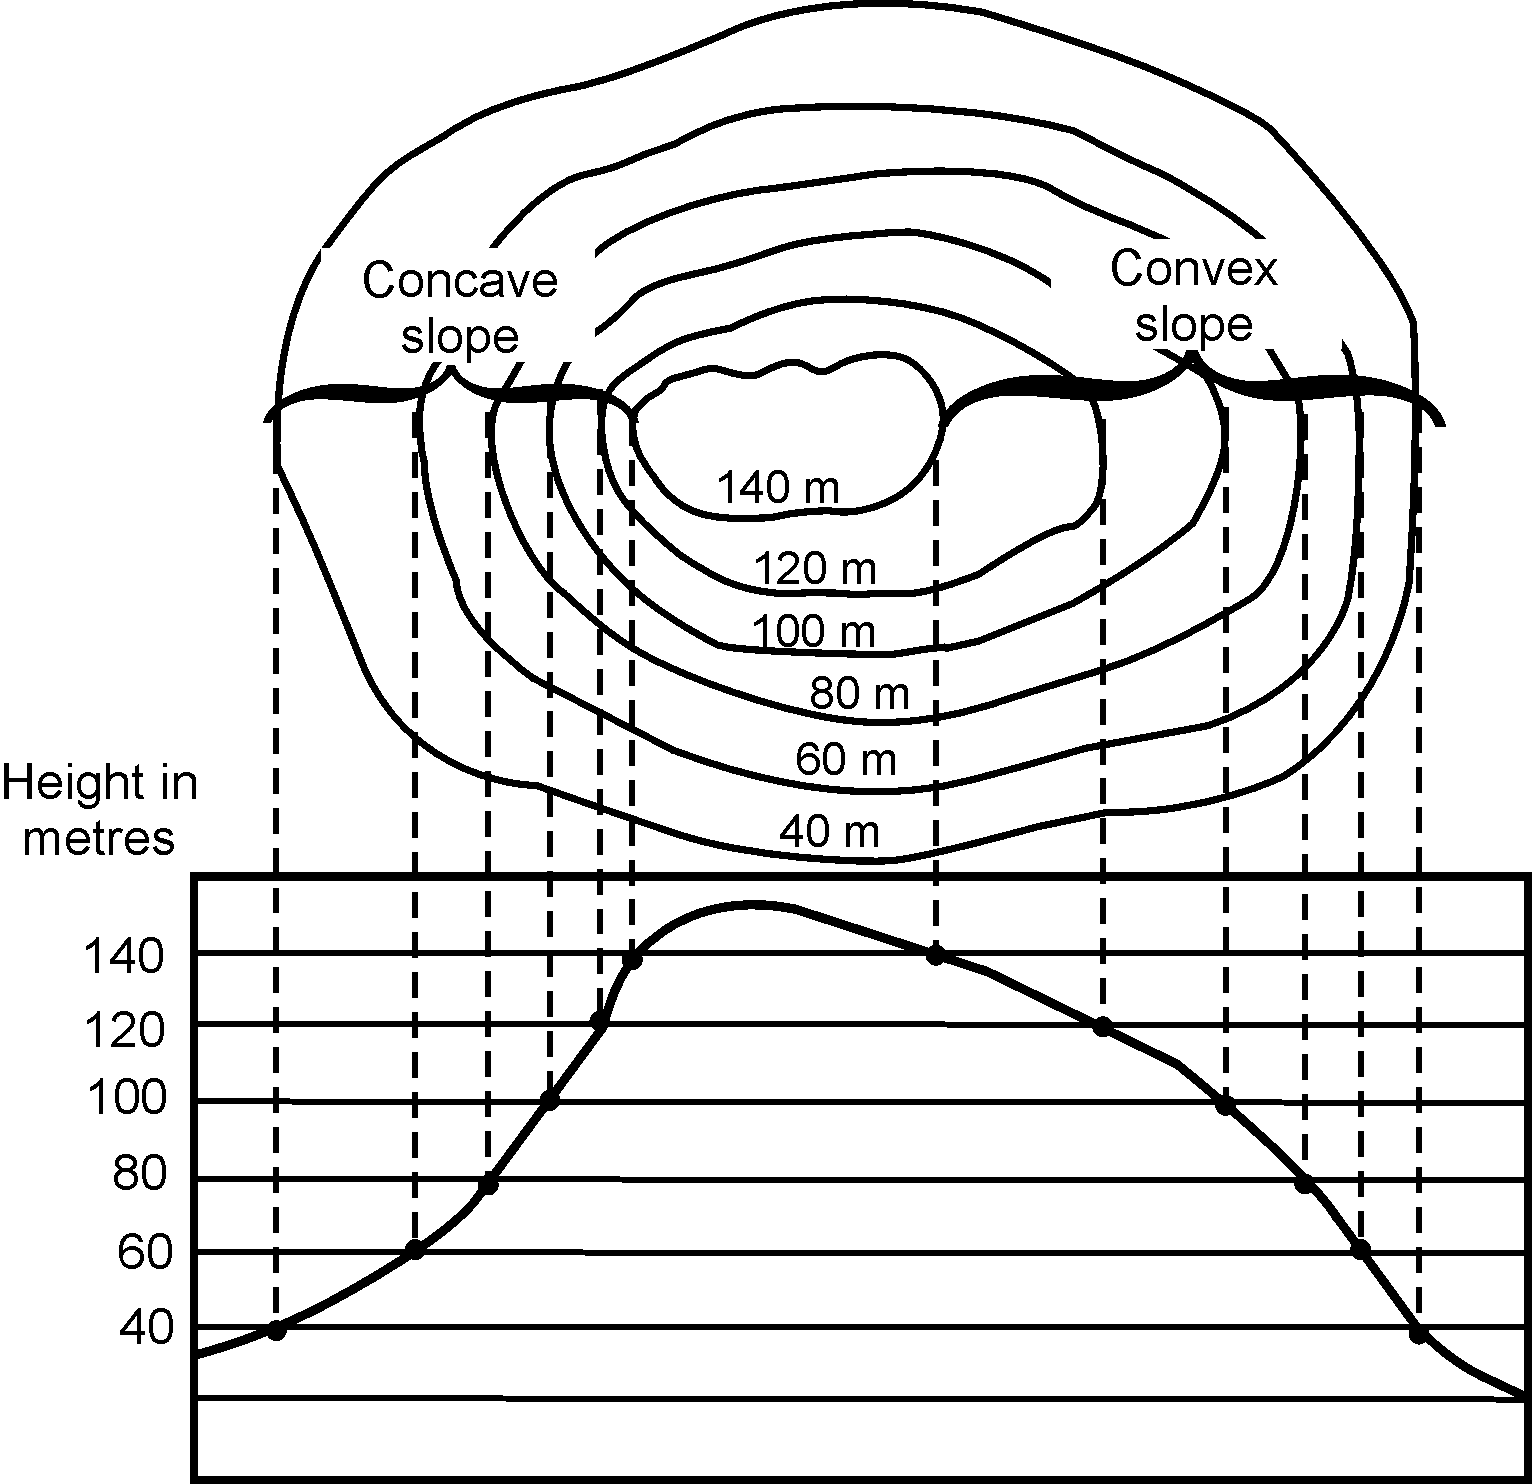 hight resolution of Reading contour patterns on a topographic map